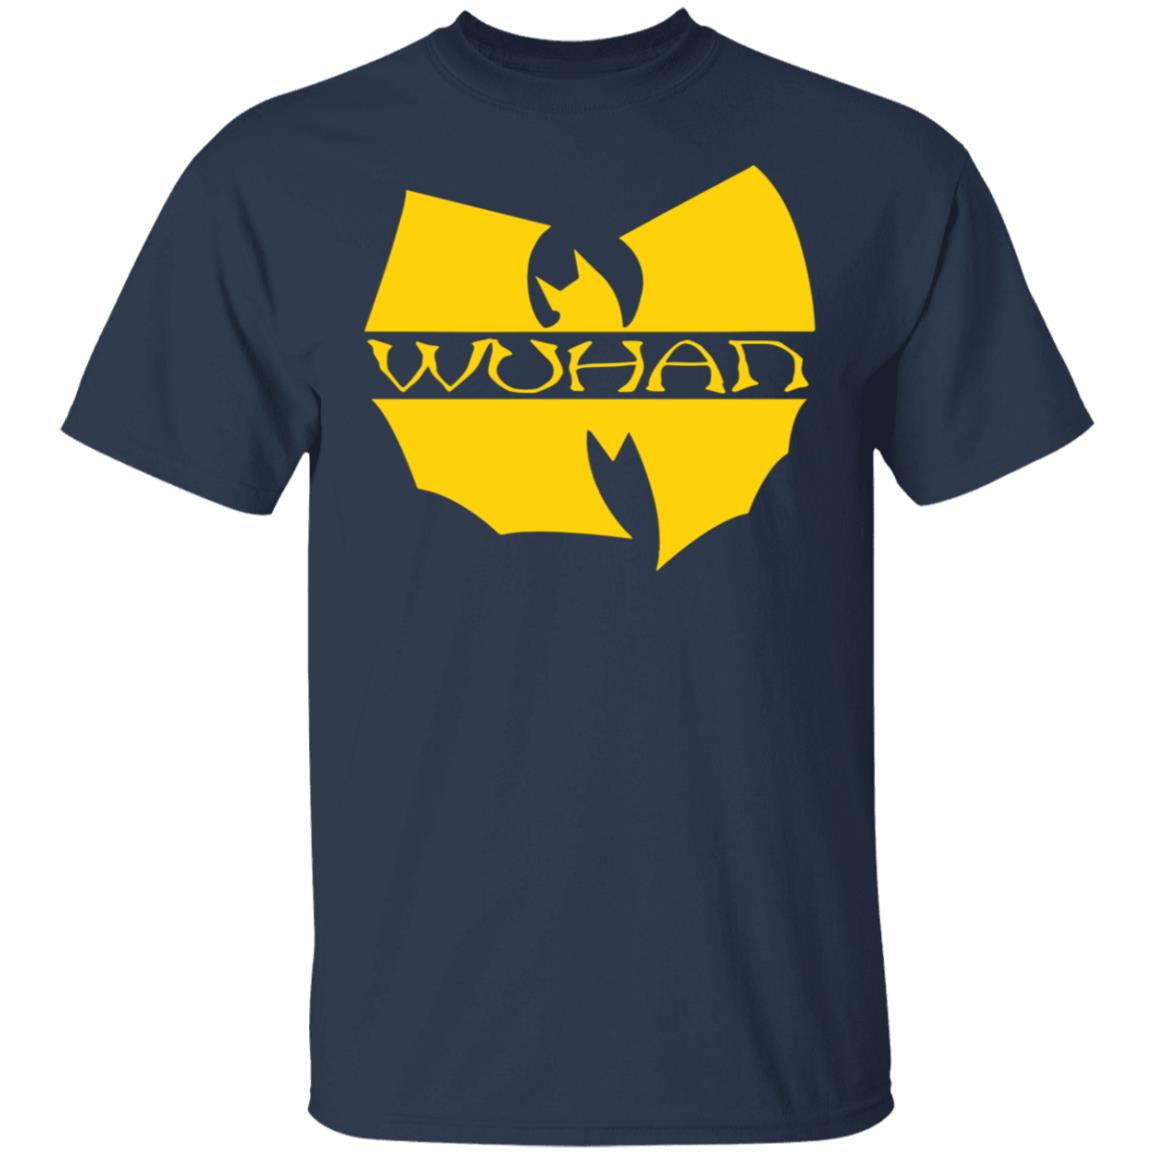 Wuhan T-shirt with the Wu Tang logo. Really clever and cheeky. Get yours online.